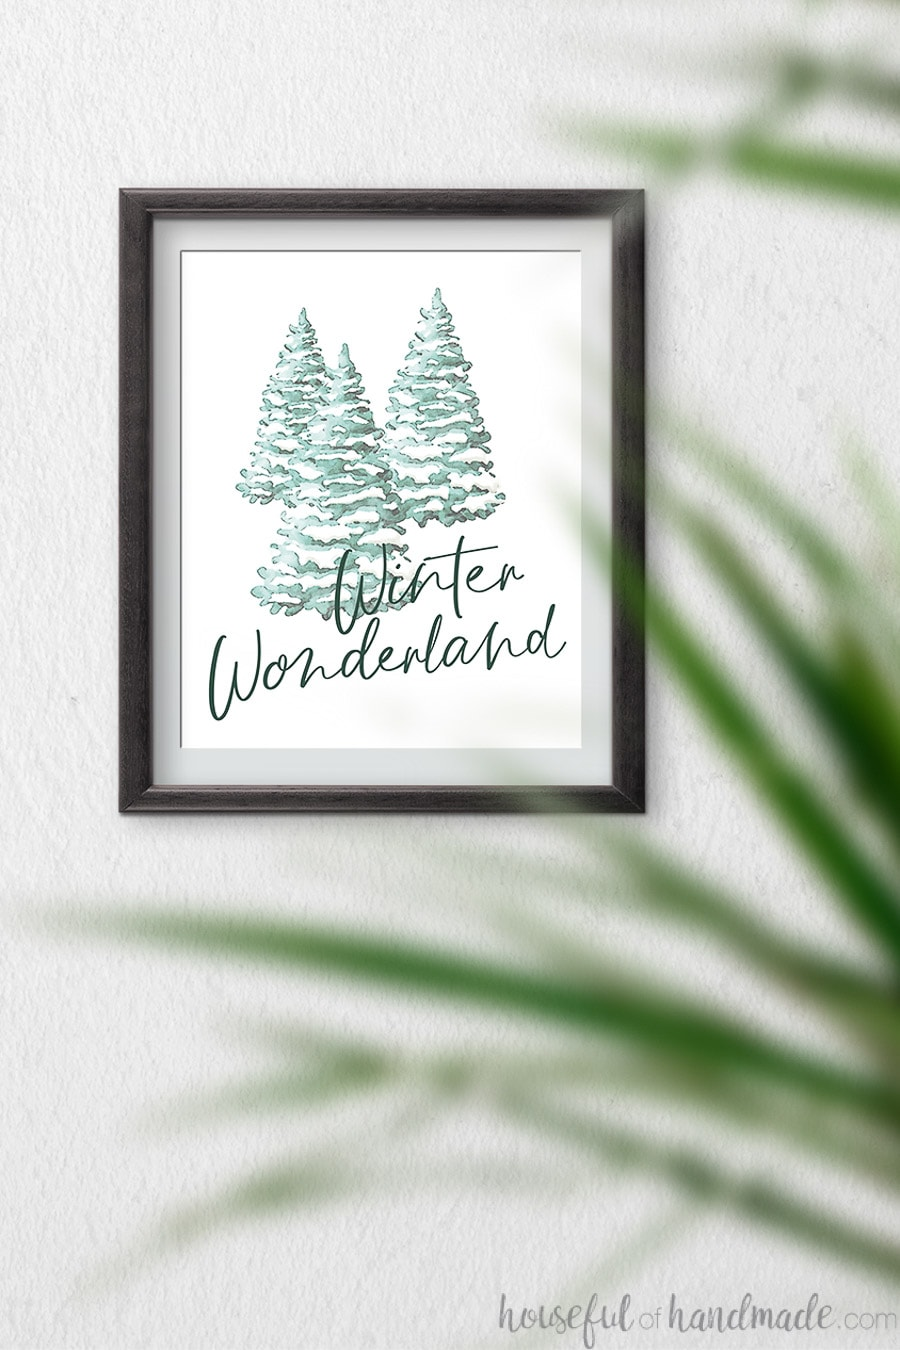 Watercolor Christmas printable with snow covered trees and script writing of Winter Wonderland on it, hanging on a wall.